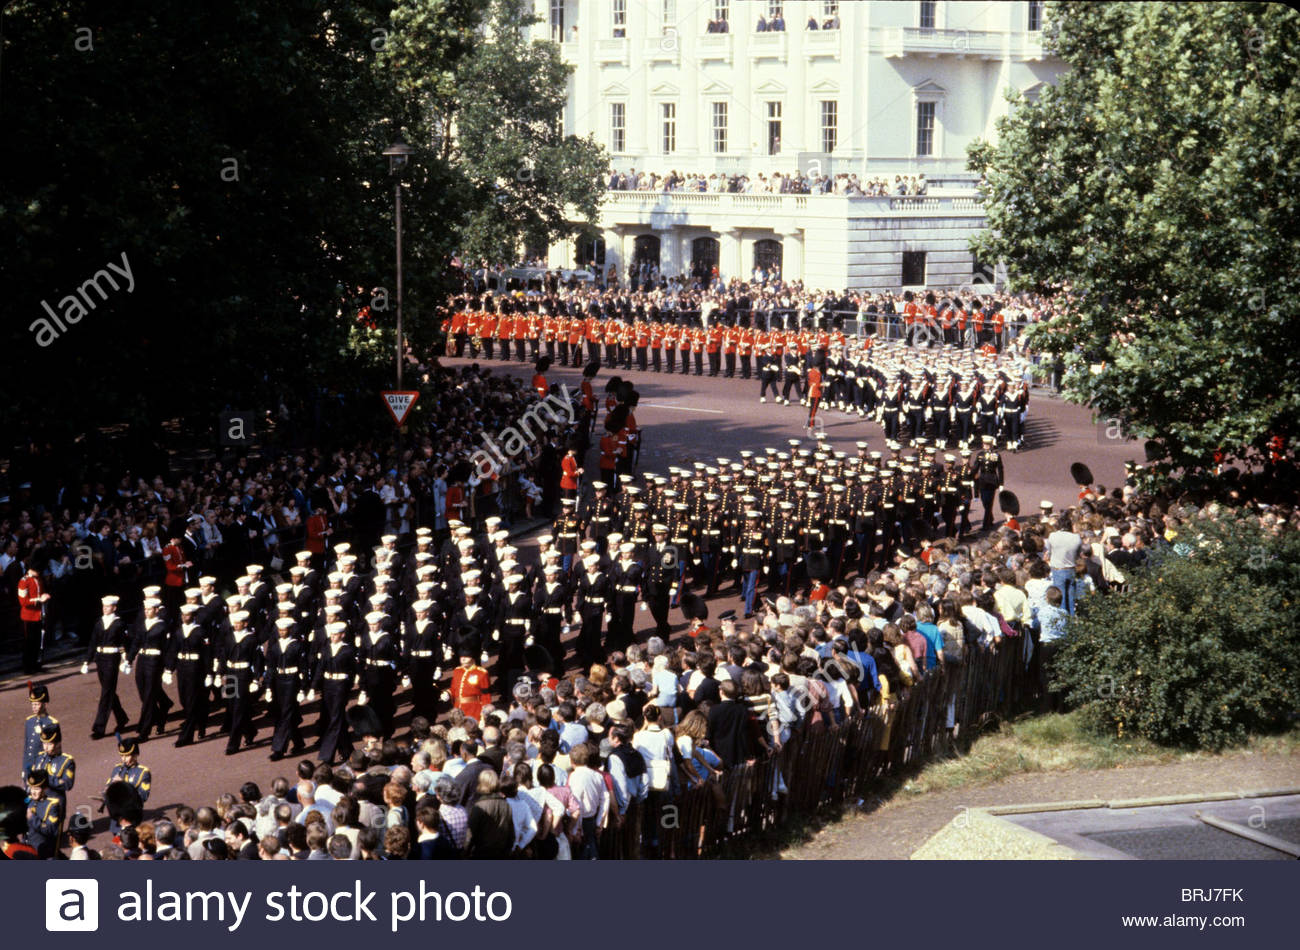 FUNERAL OF LORD MOUNTBATTEN LONDON BRITAIN 1979 - Stock Image